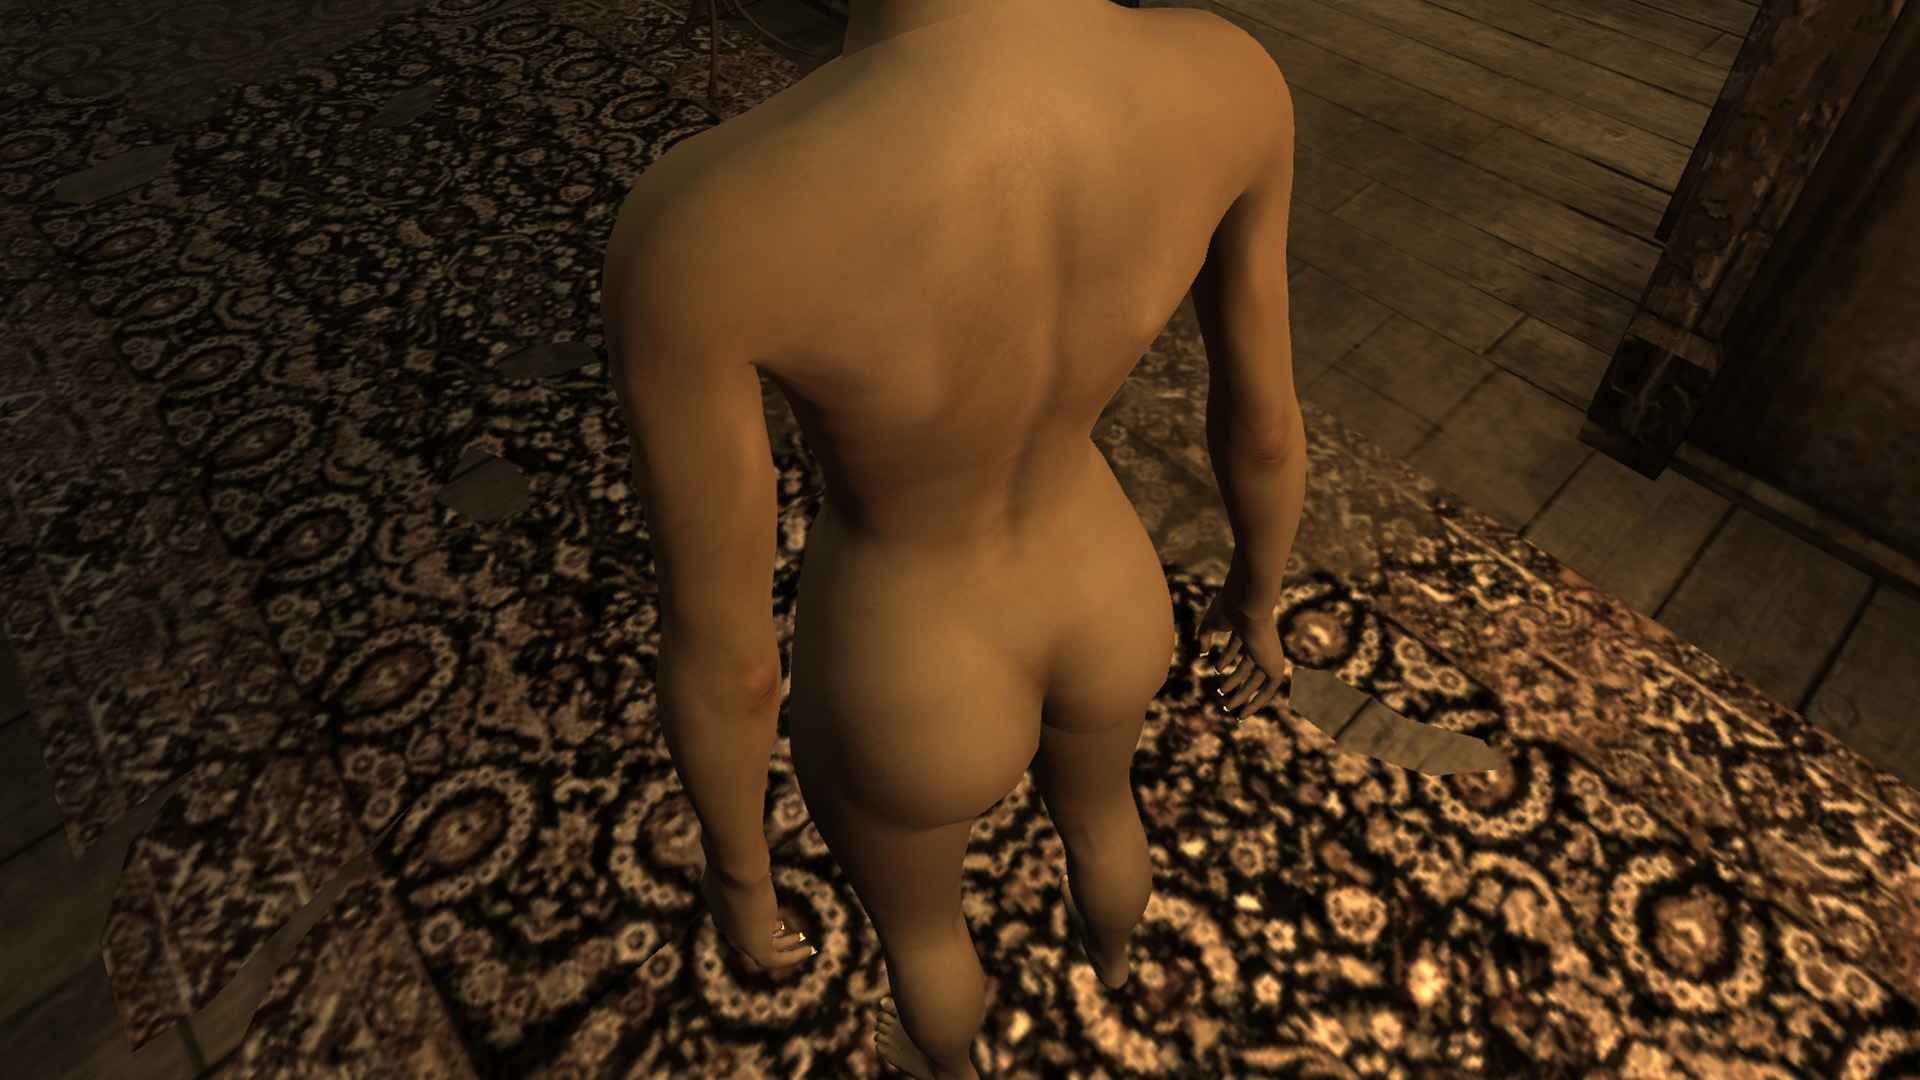 Fallout new vegas nude patch smut films